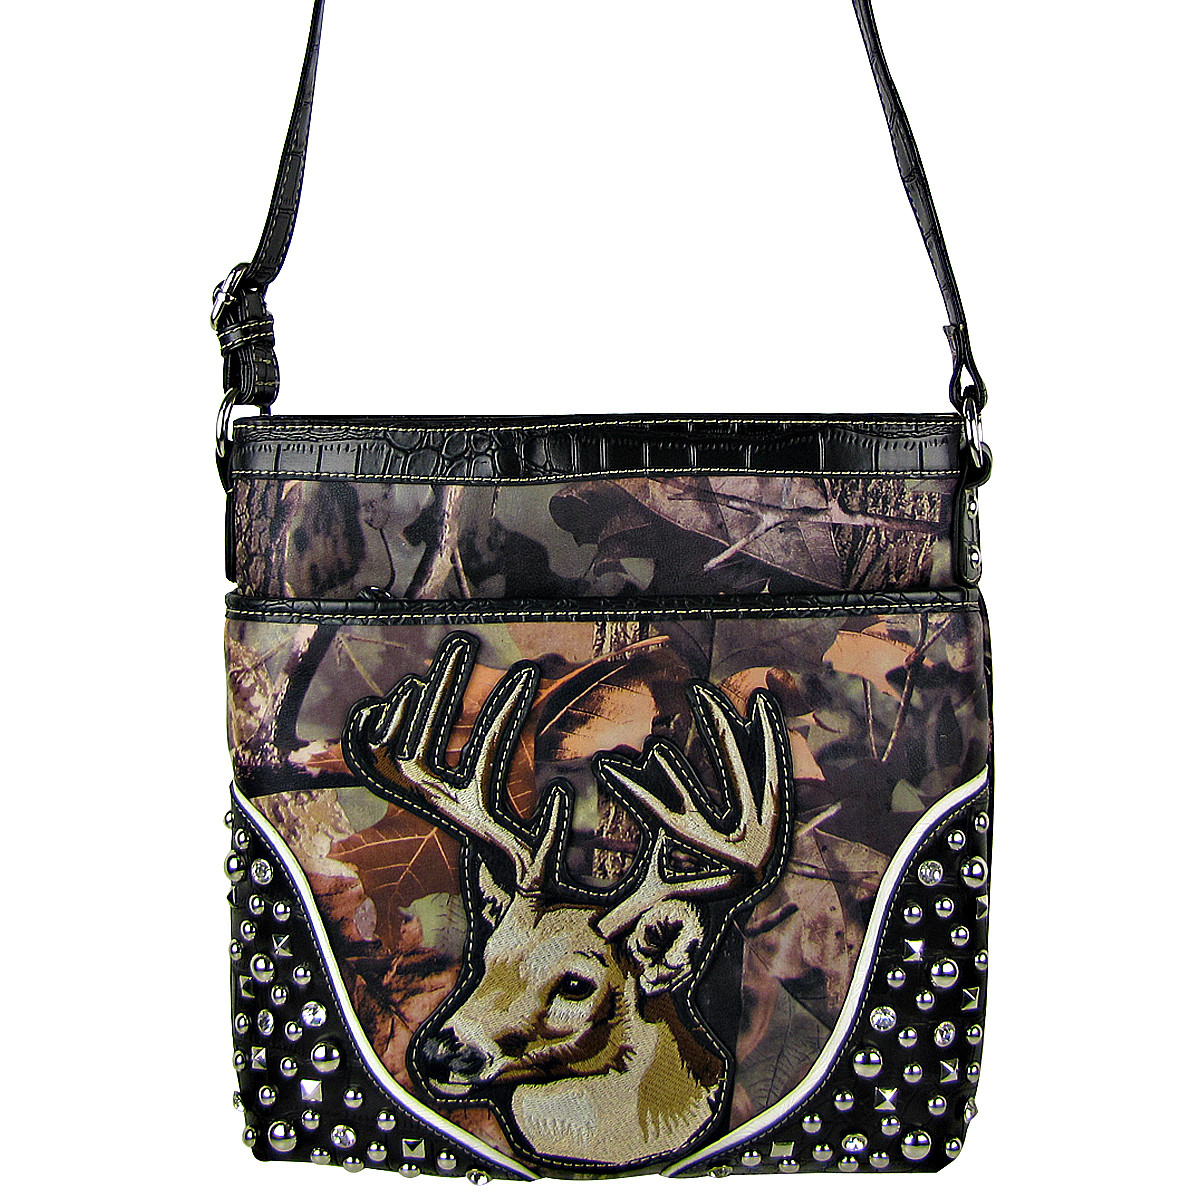 BLACK CAMO STUDDED RHINESTONE STITCHED DEER LOOK MESSENGER BAG MB1-HL12960BLK